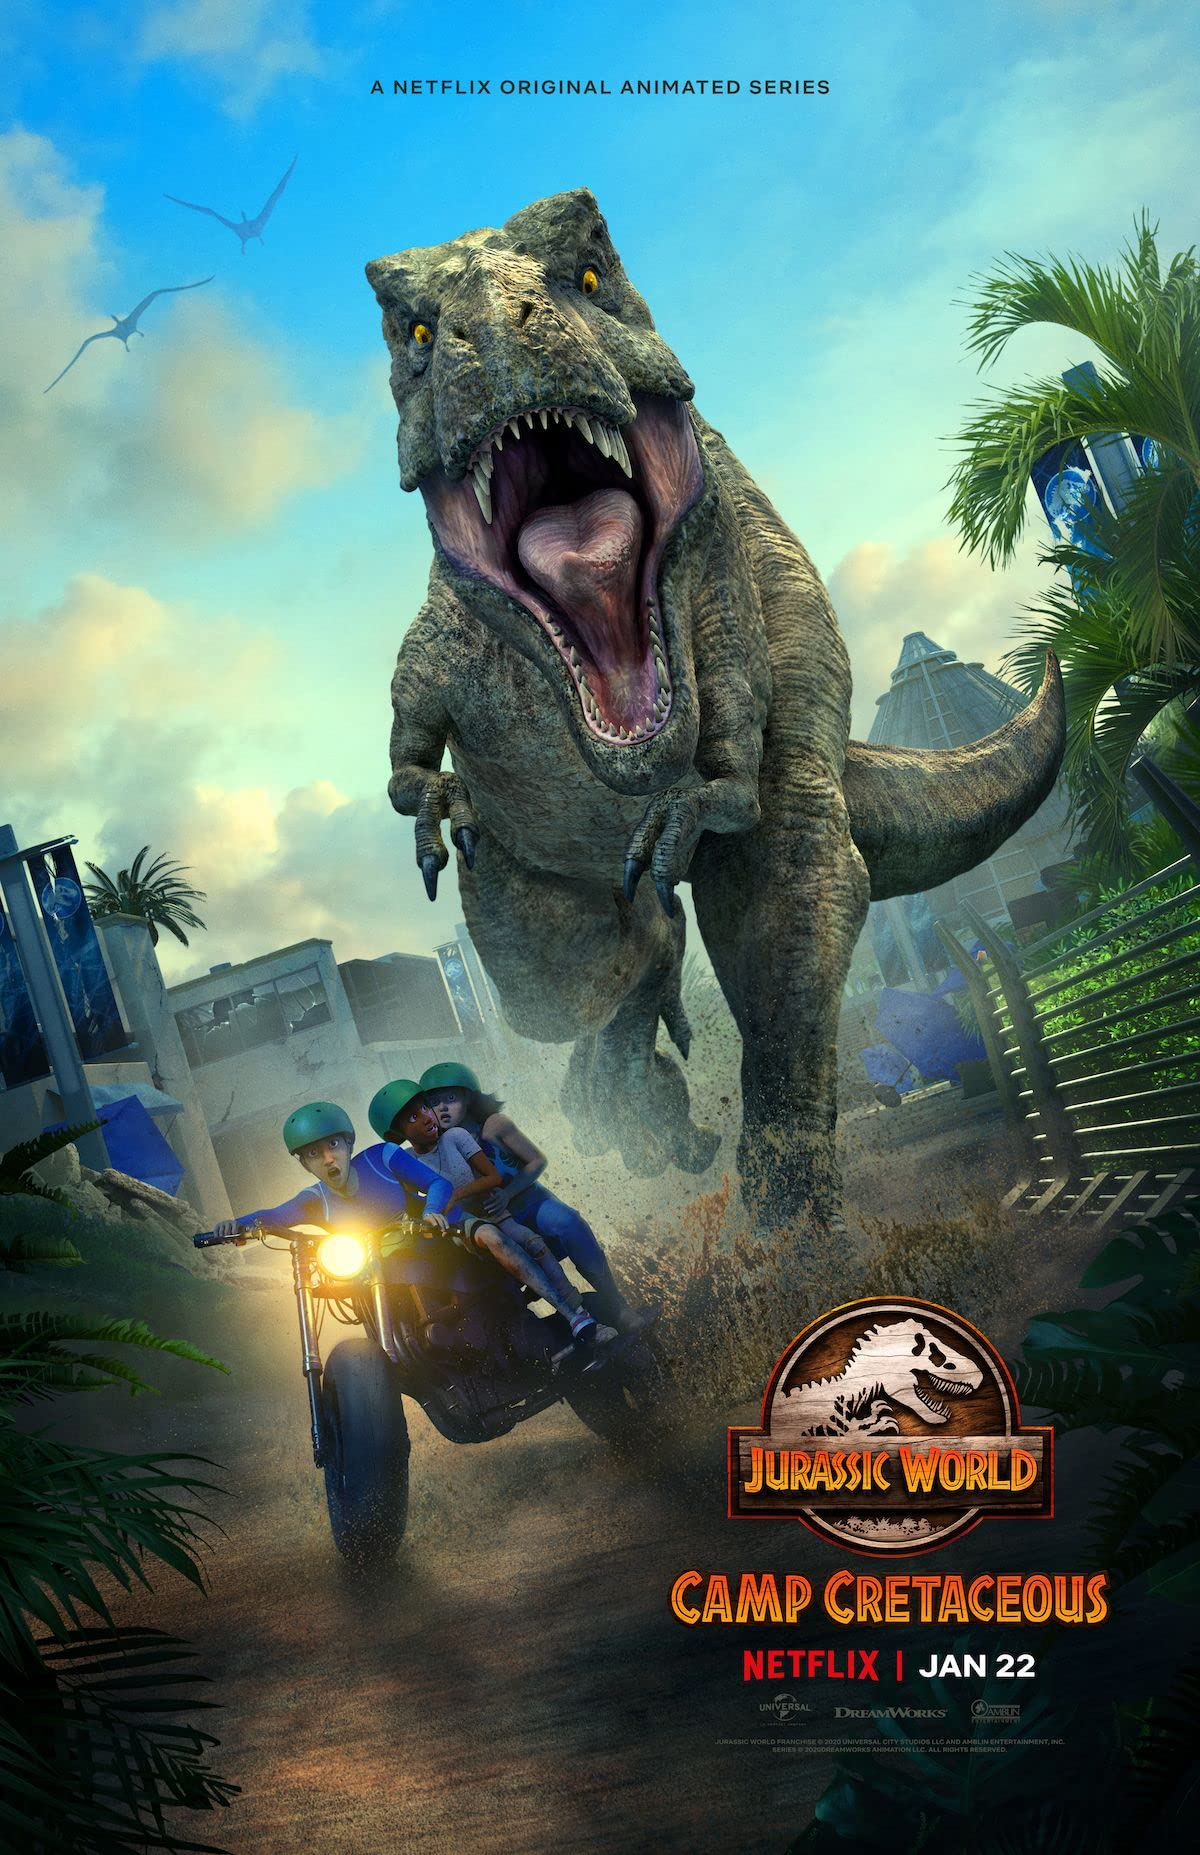 Jurassic World: Camp Cretaceous S02 (2021) Hindi Netflix Complete Web Series 605MB HDRip Download